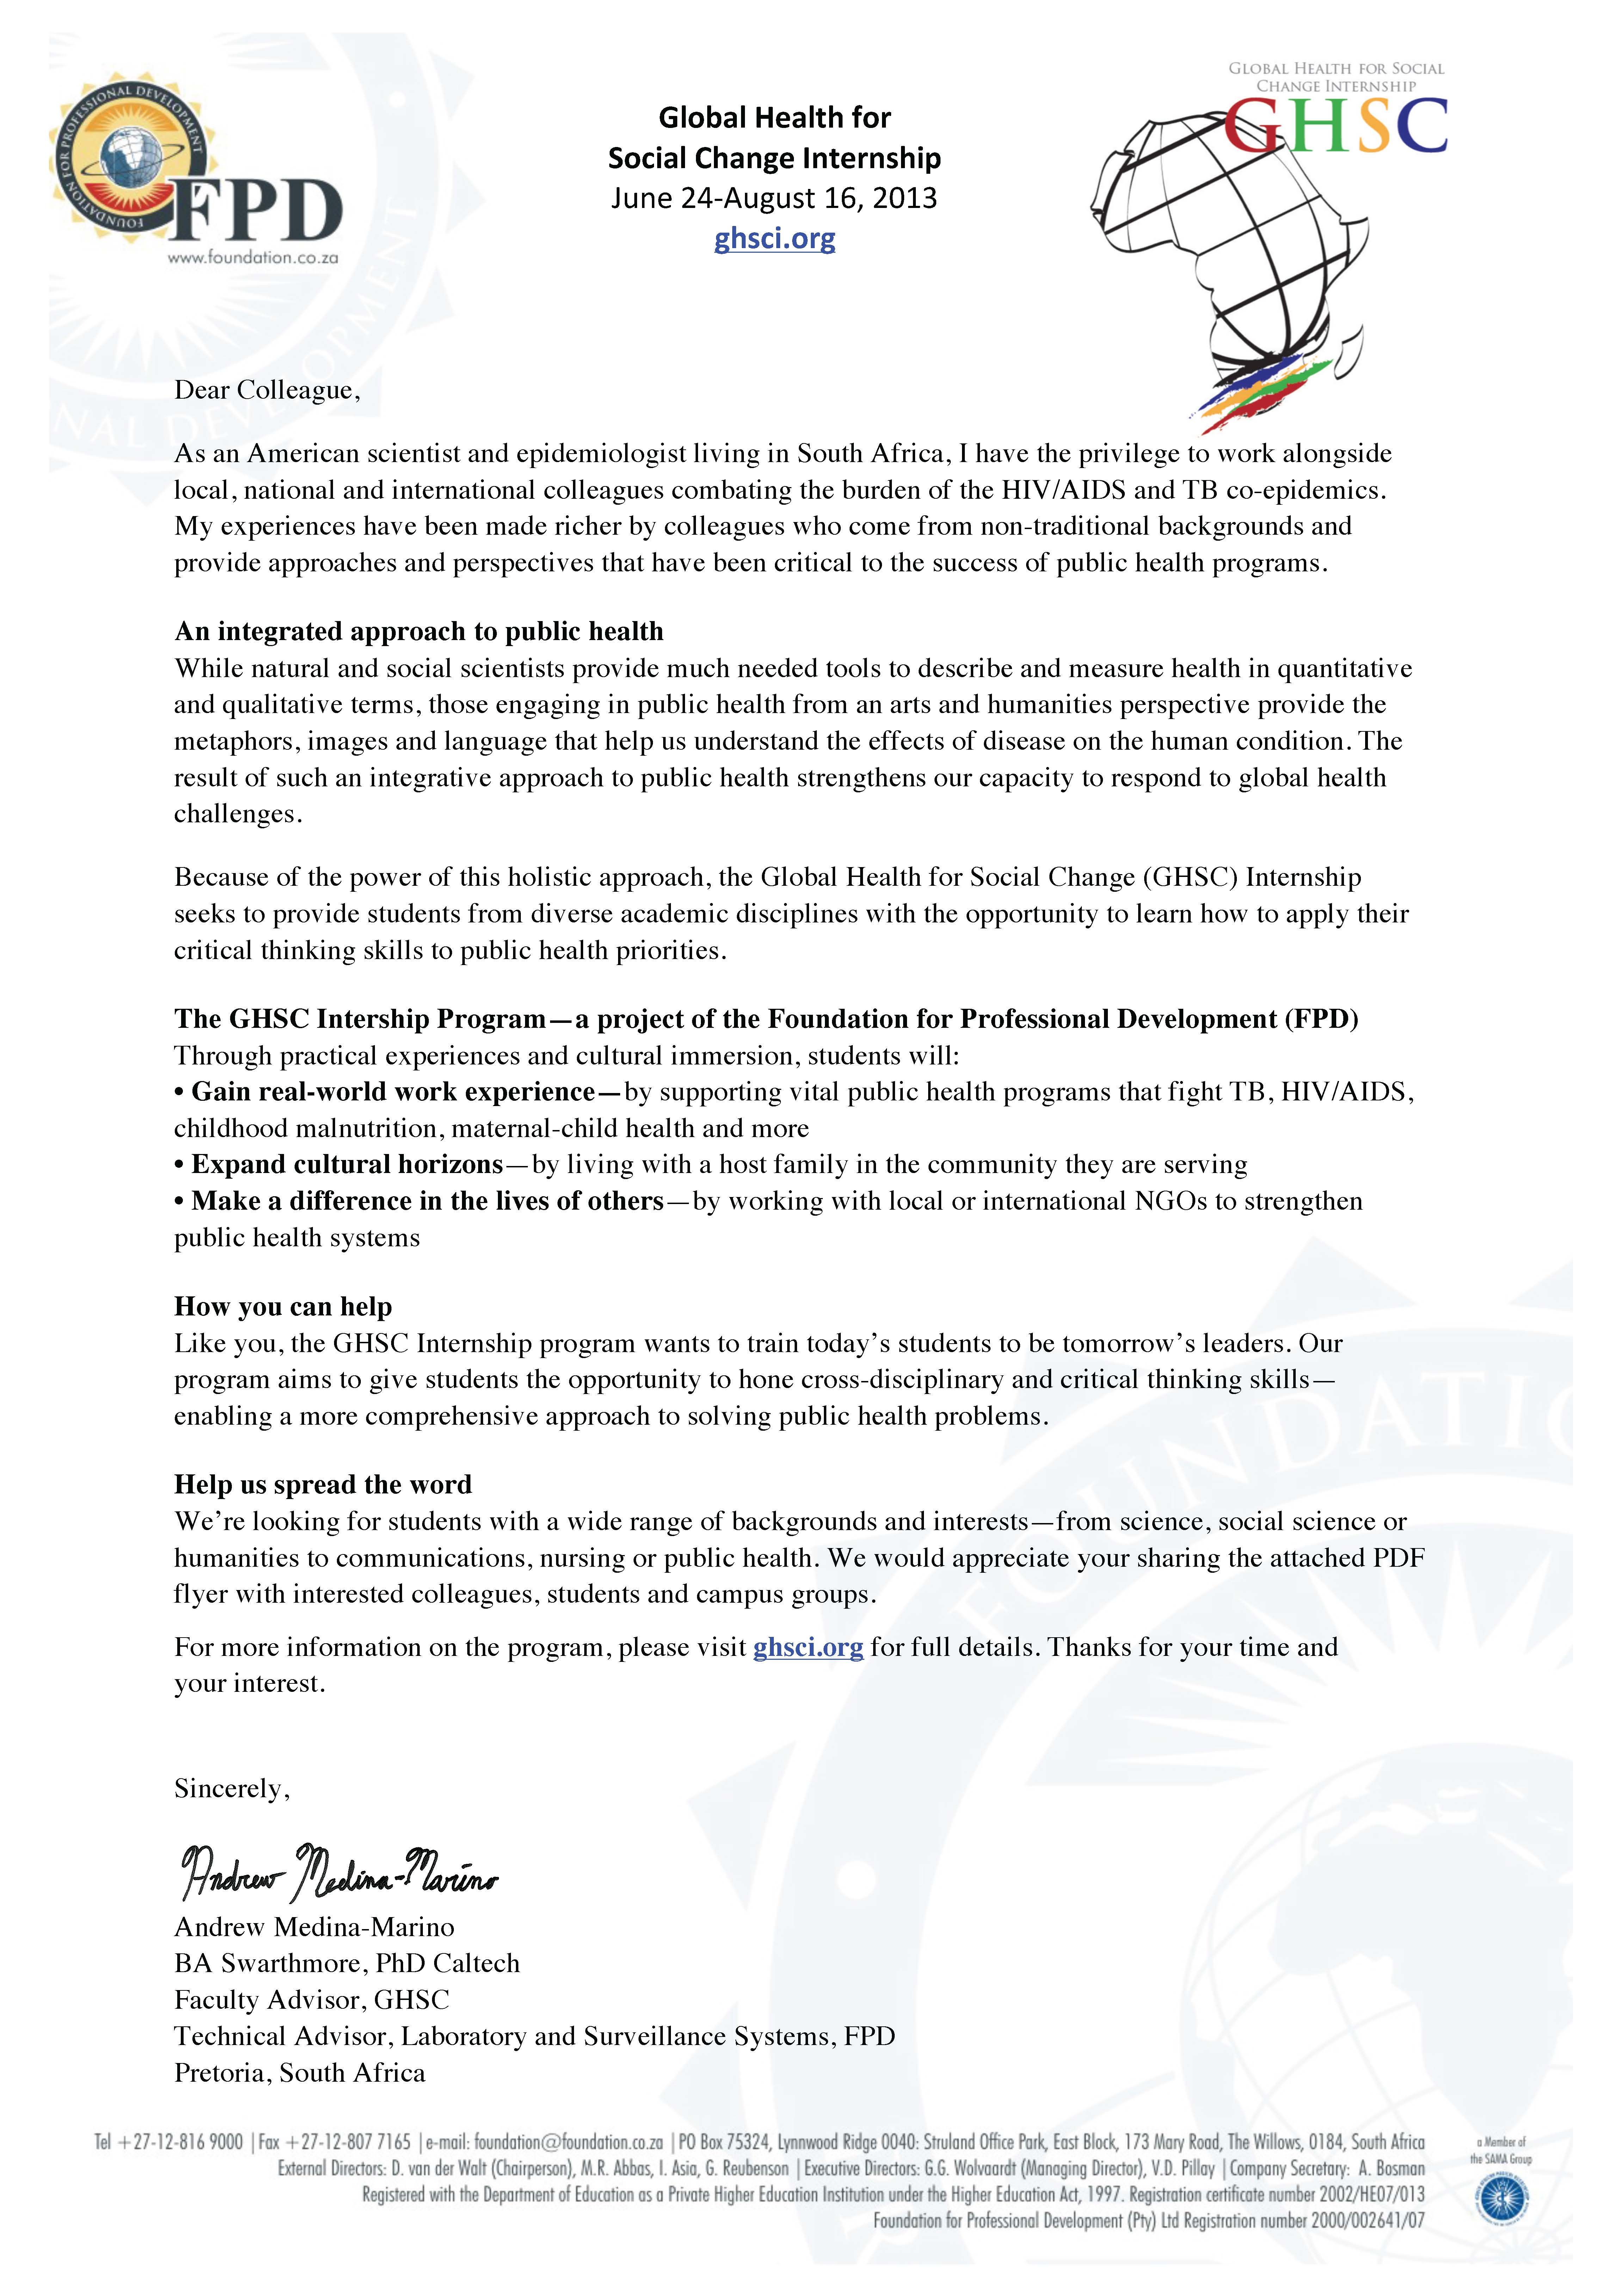 cover letter block format by emailed cover letter format image collections cover letter ideas epidemiologist - Traditional Cover Letter Format